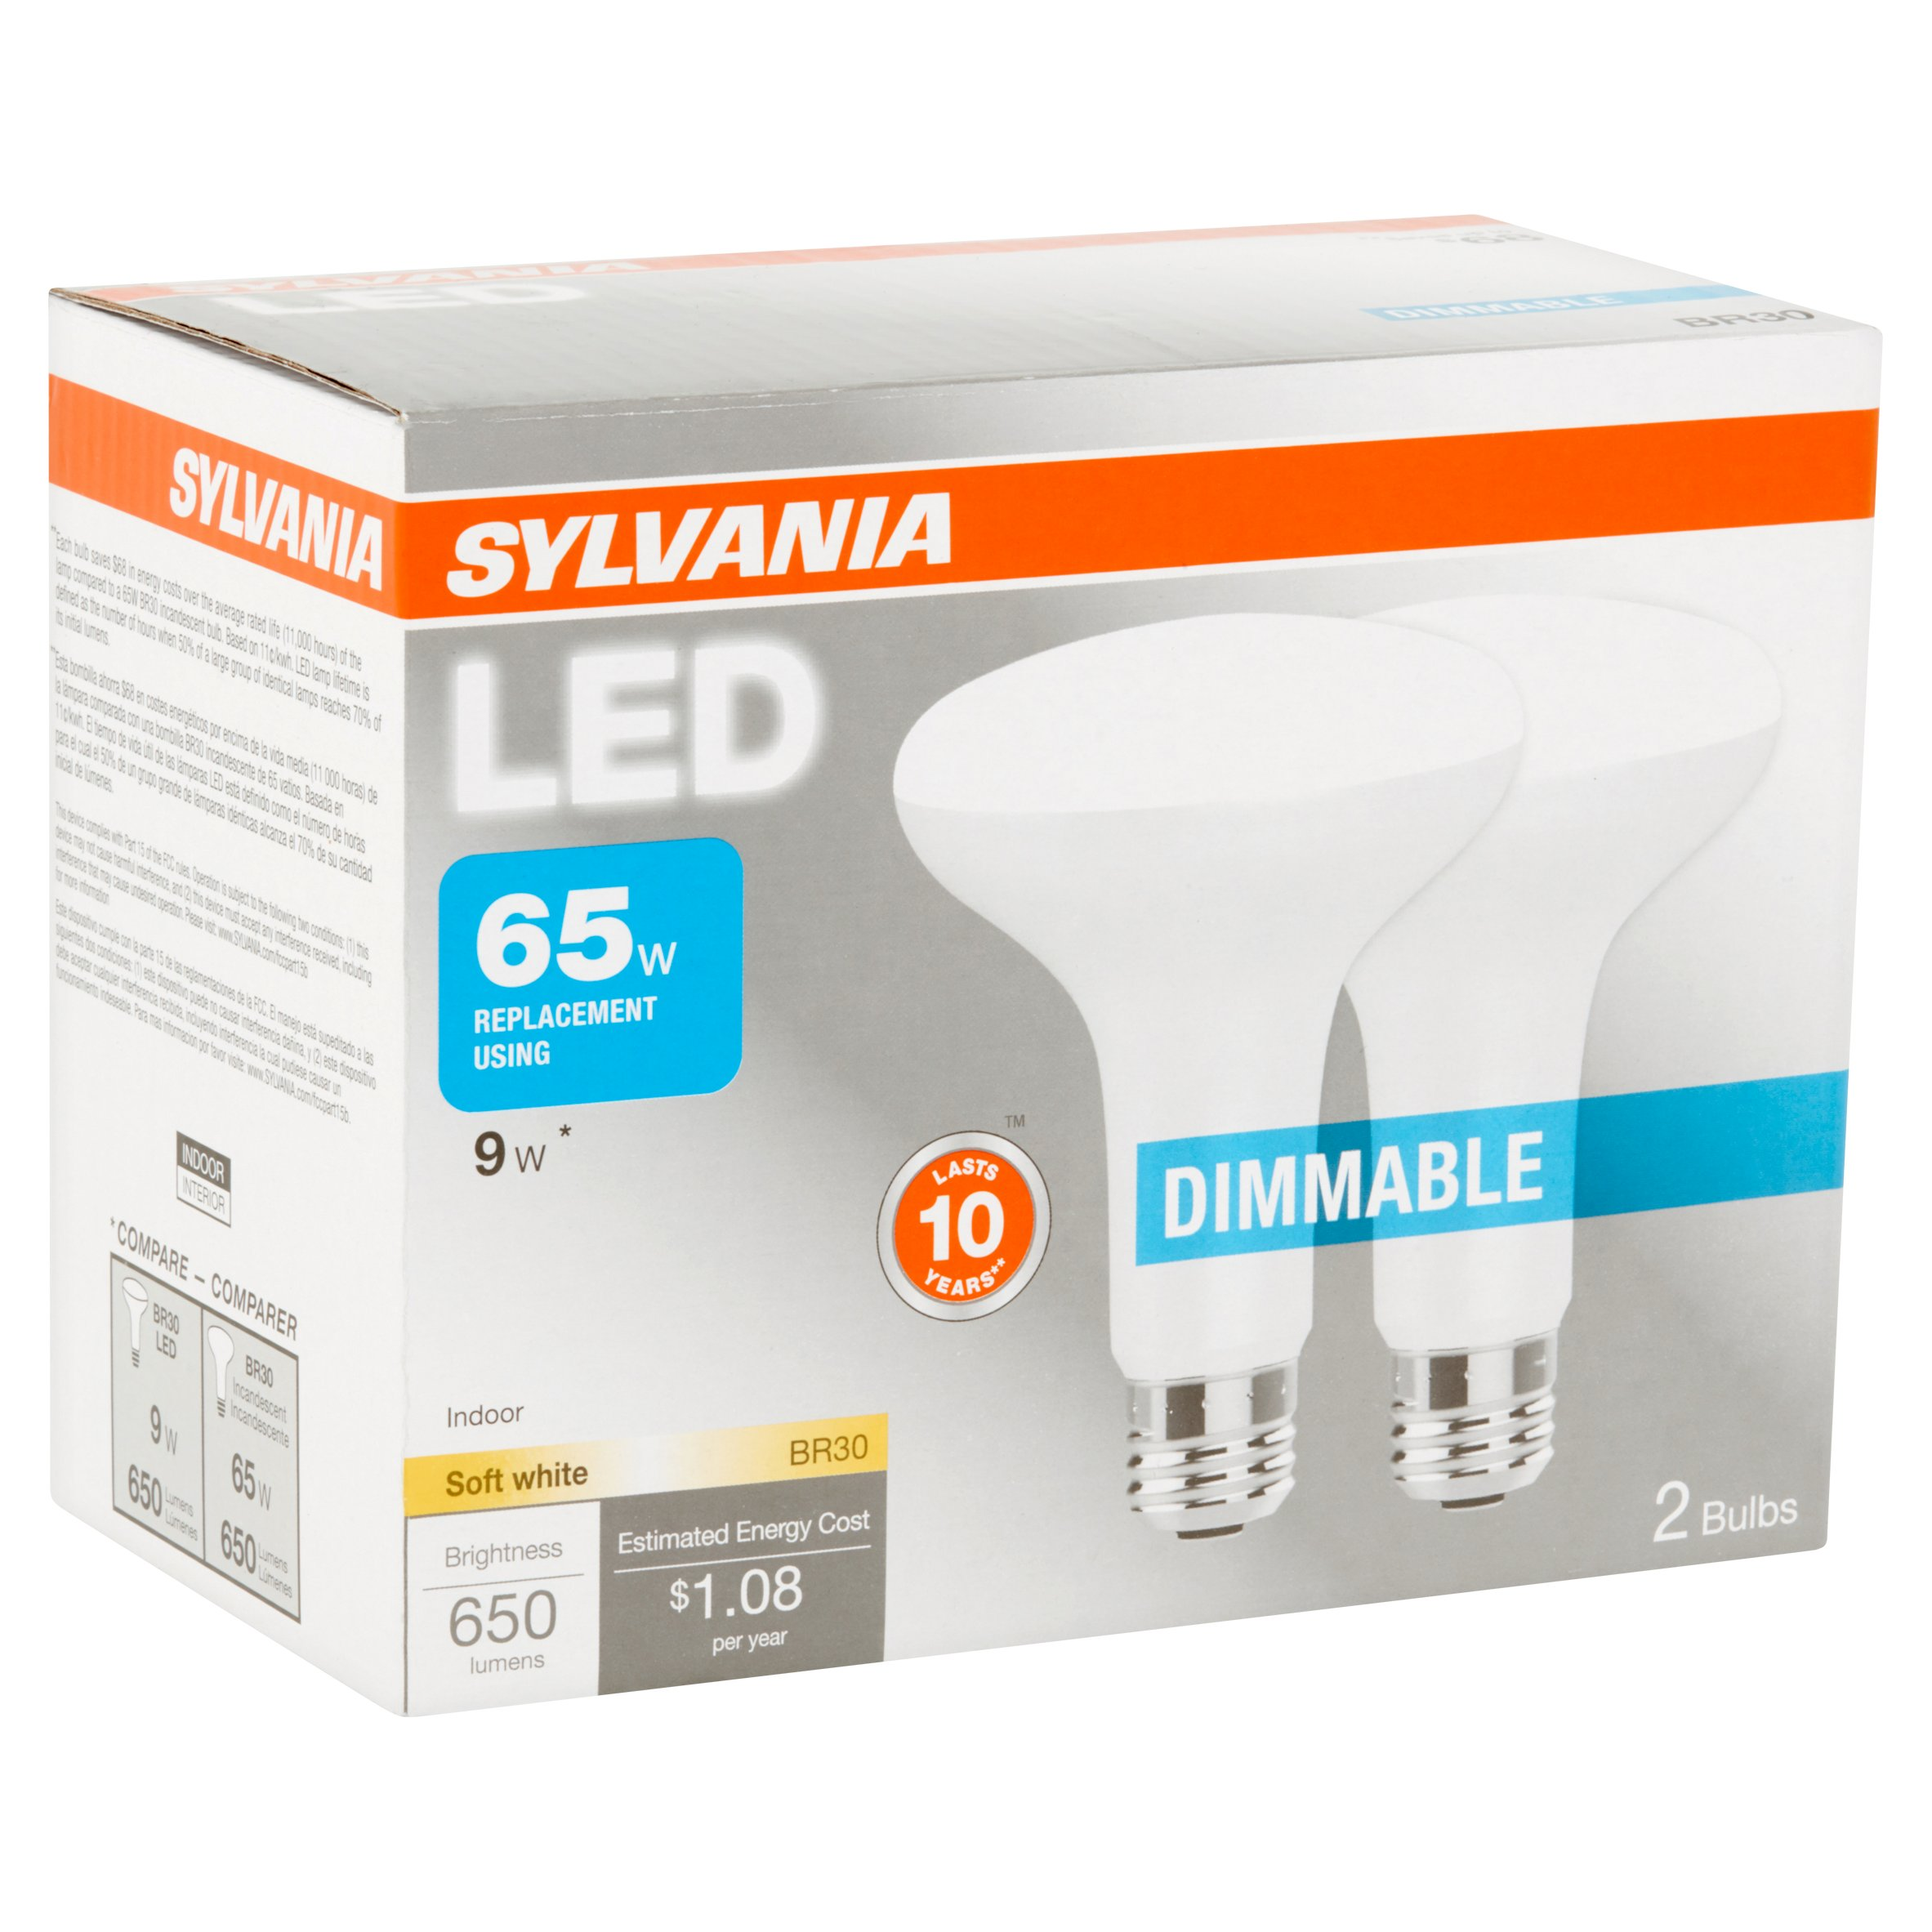 Sylvania BR30 LED Light Bulbs, 9W (65W Equivalent), Dimmable, Soft White, 2-count